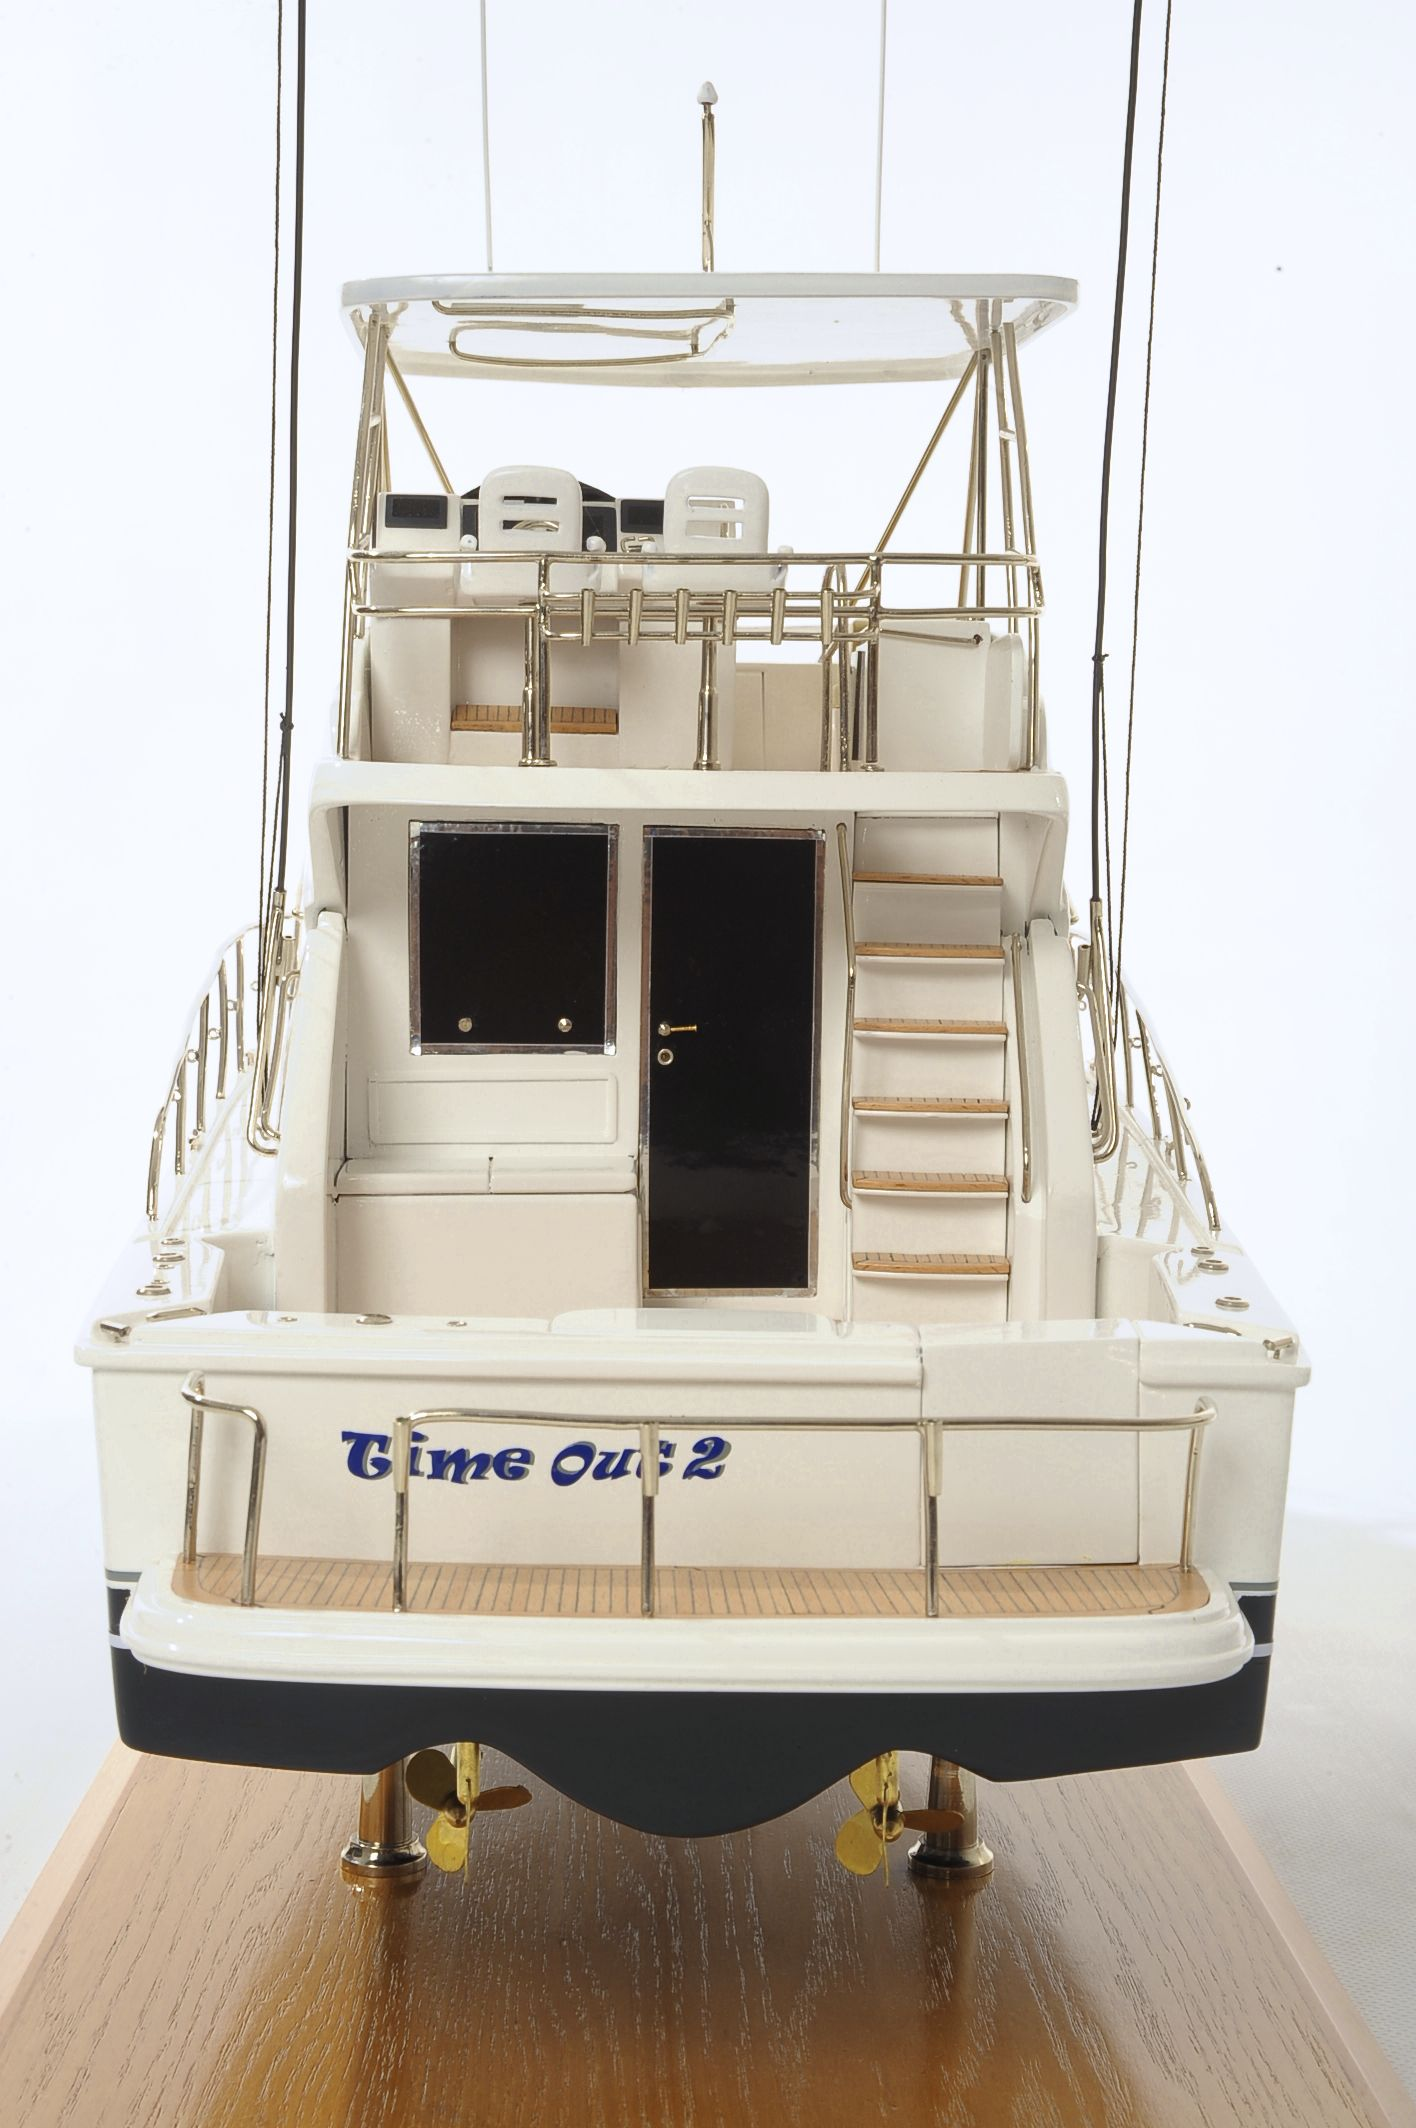 1517-8964-Rivera-45-Model-Boat-Time-Out-2